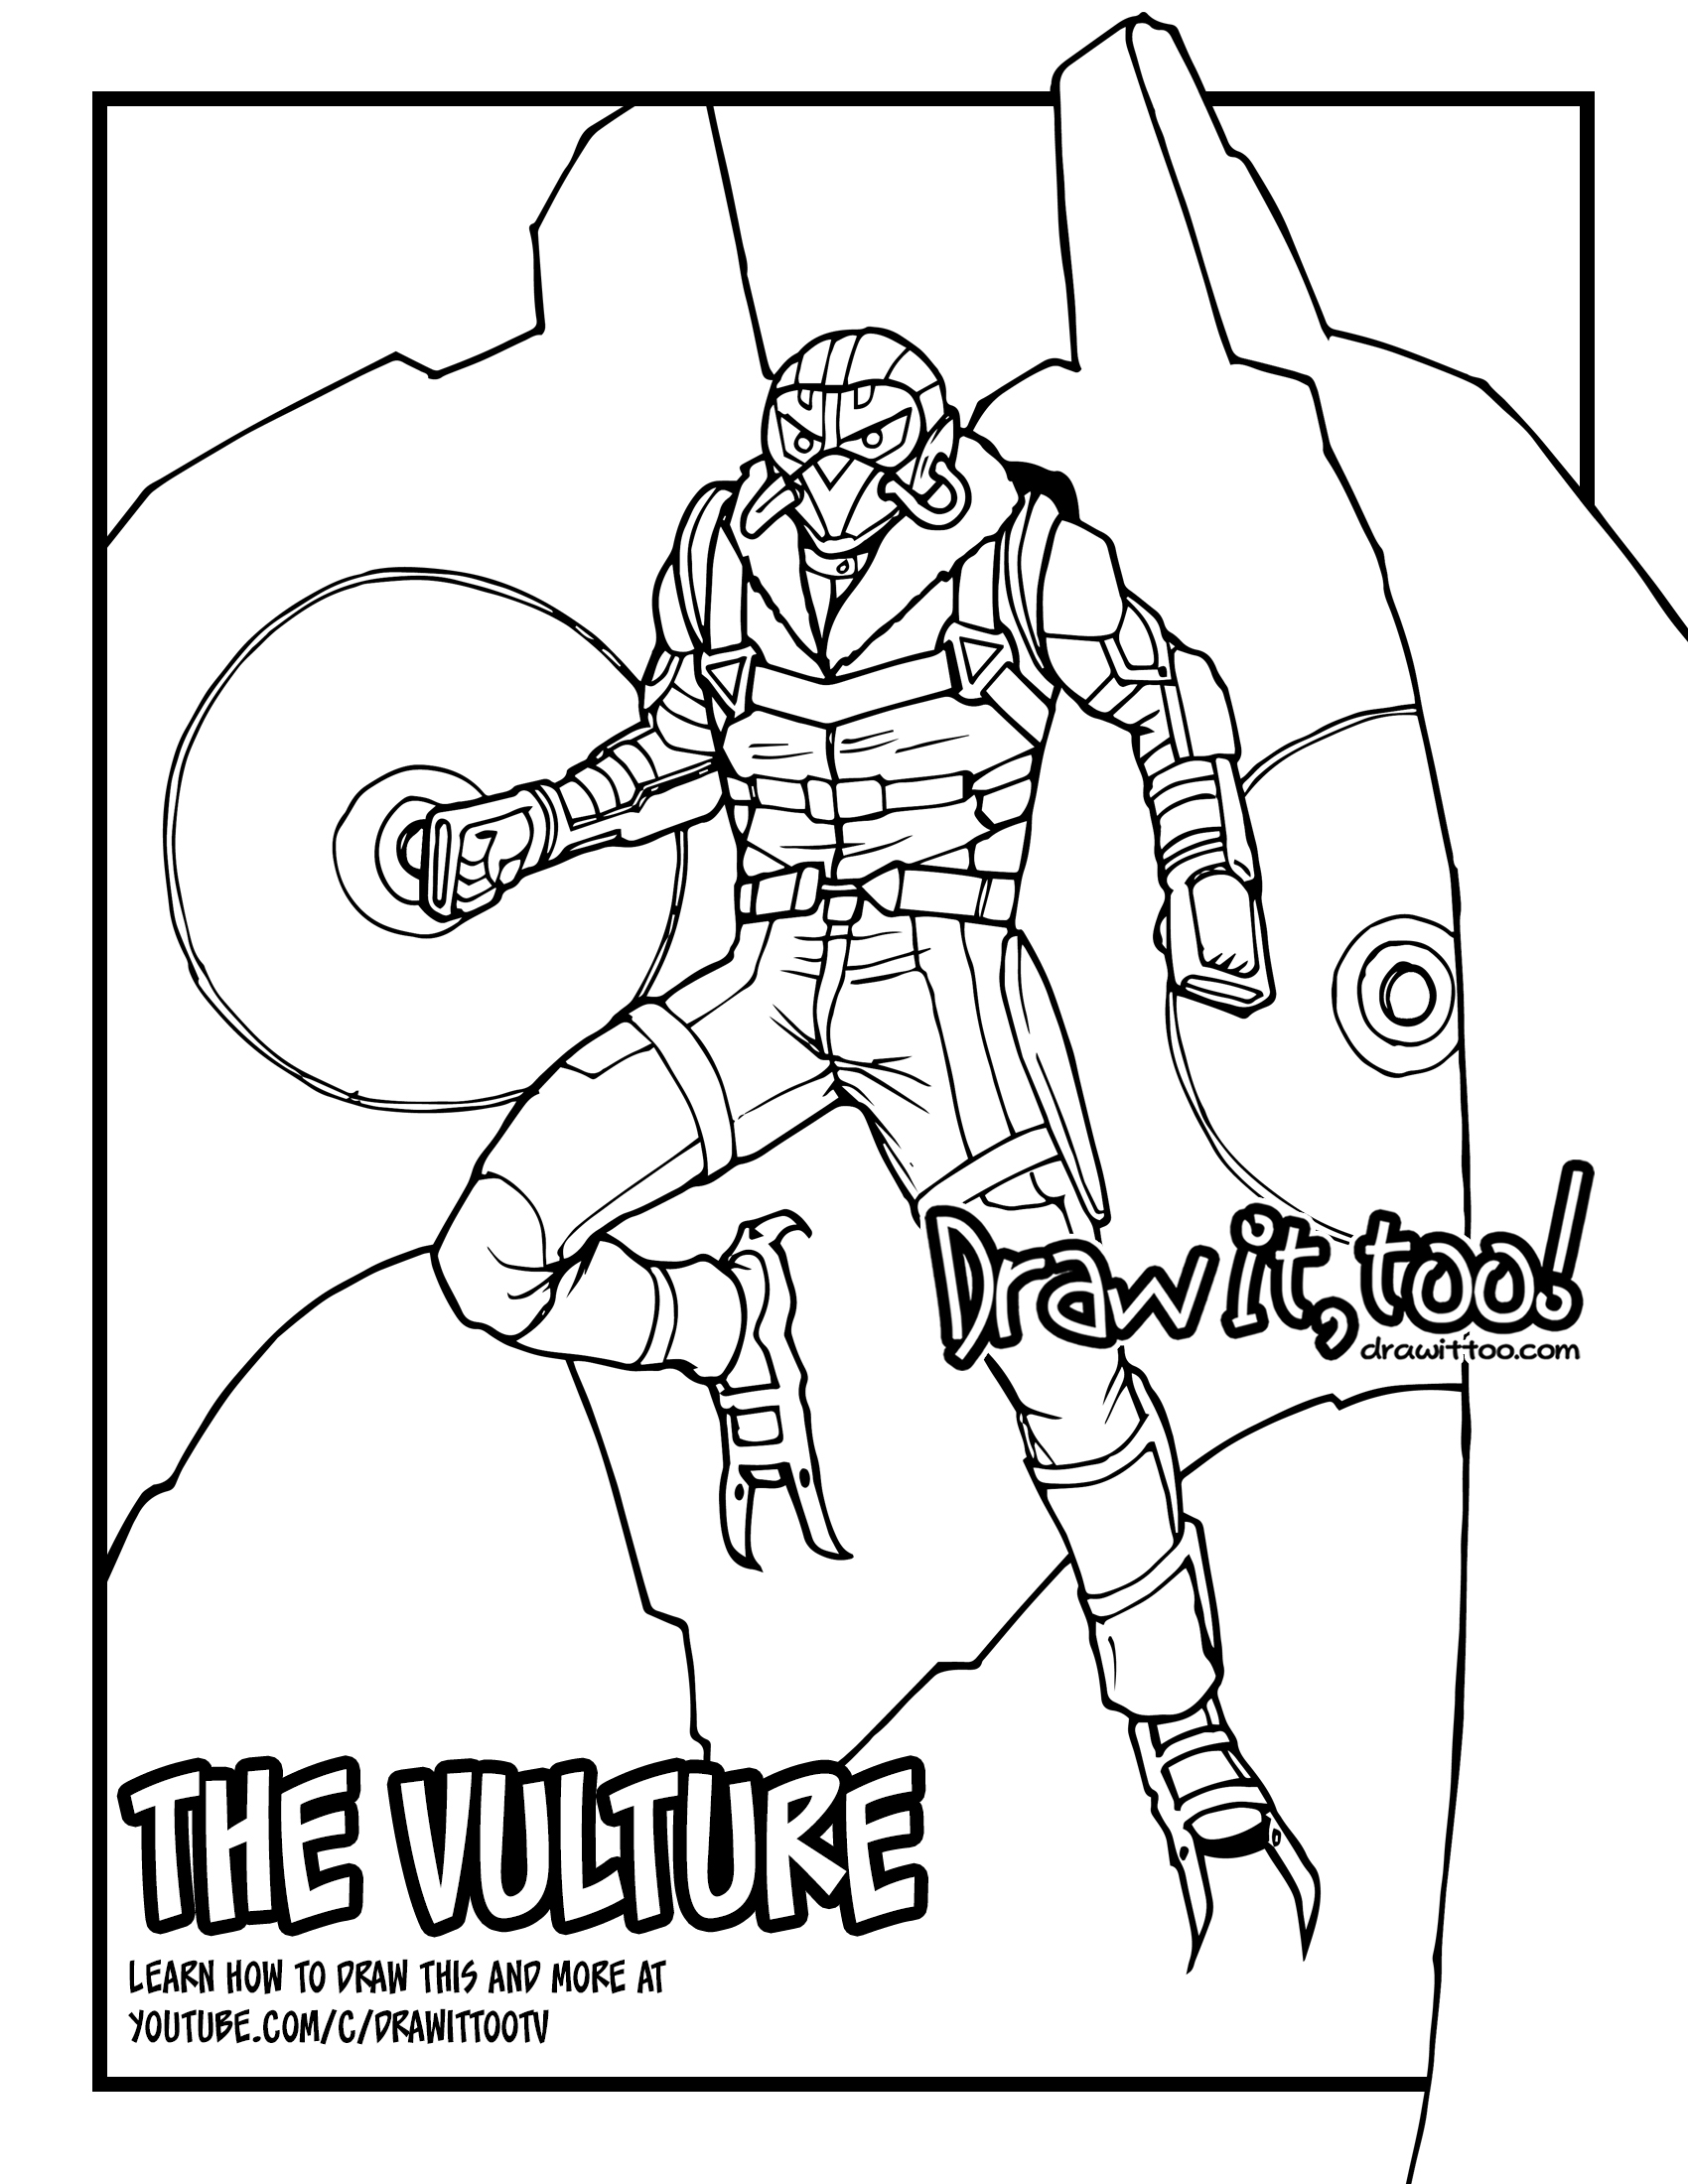 Uncategorized Vulture Coloring Page 93 ideas vulture coloring page on gerardduchemann com spider man homecoming pages